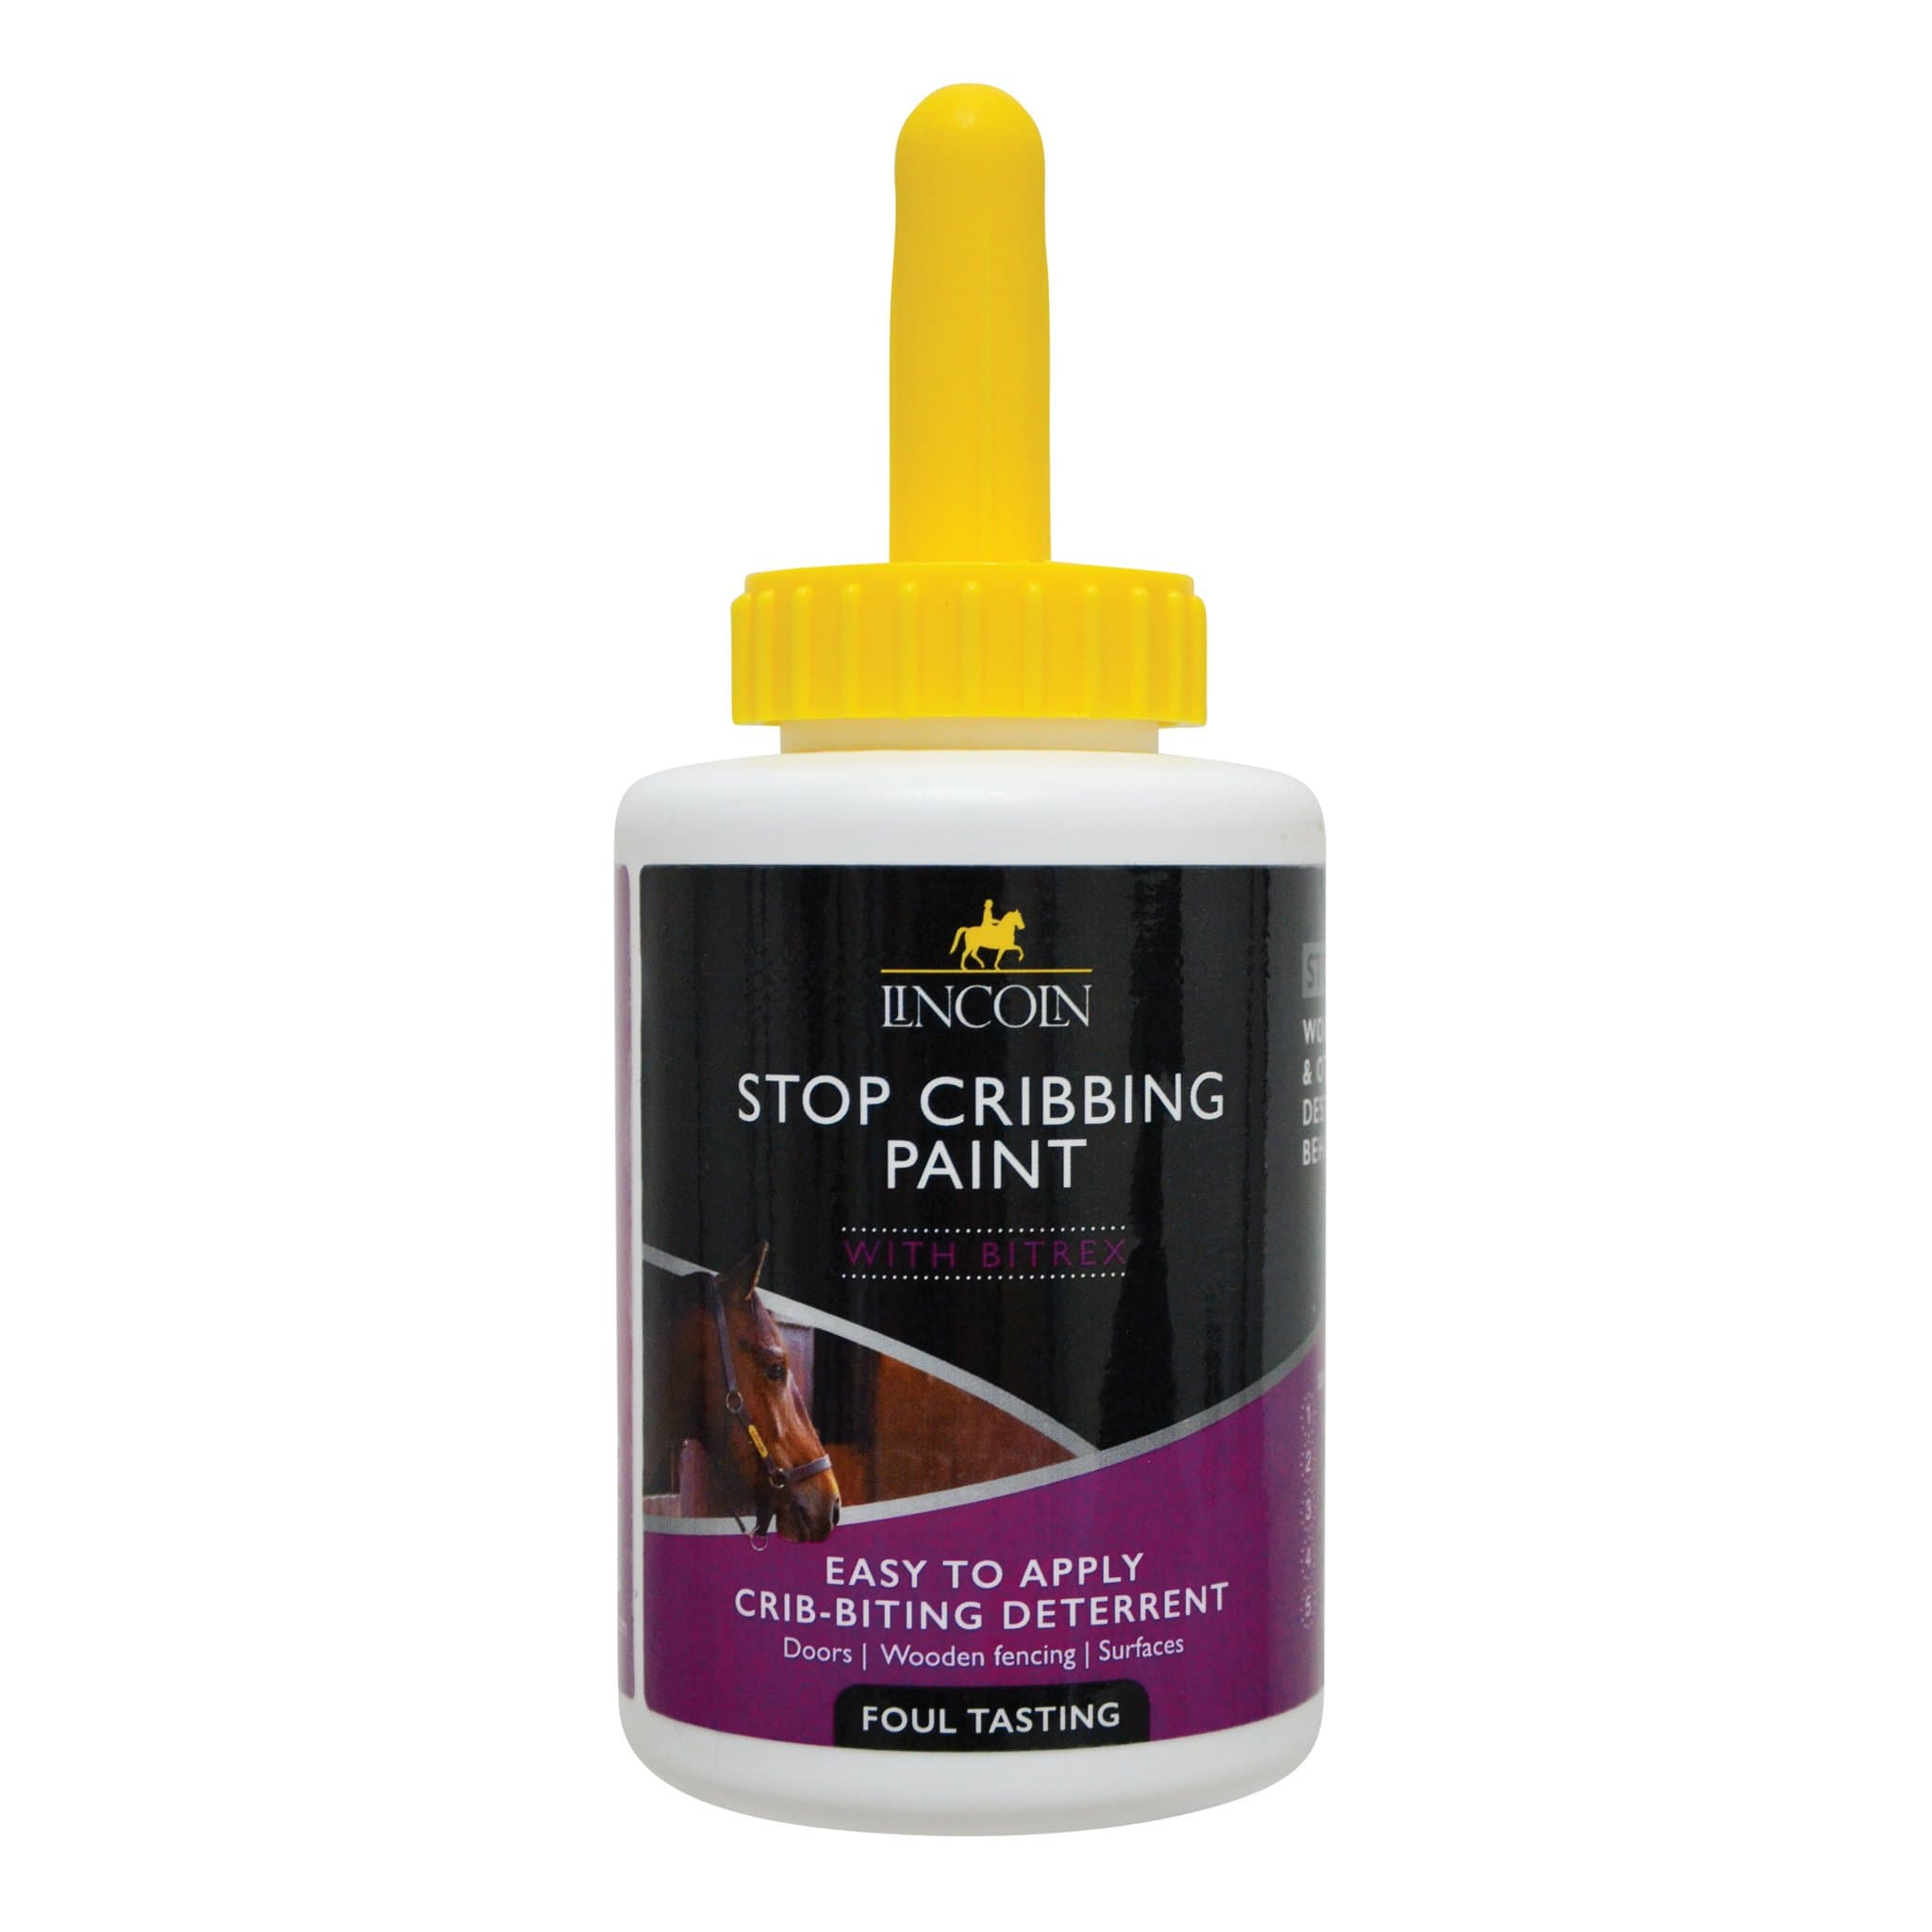 Lincoln Stop Cribbing Paint 13663 200ml